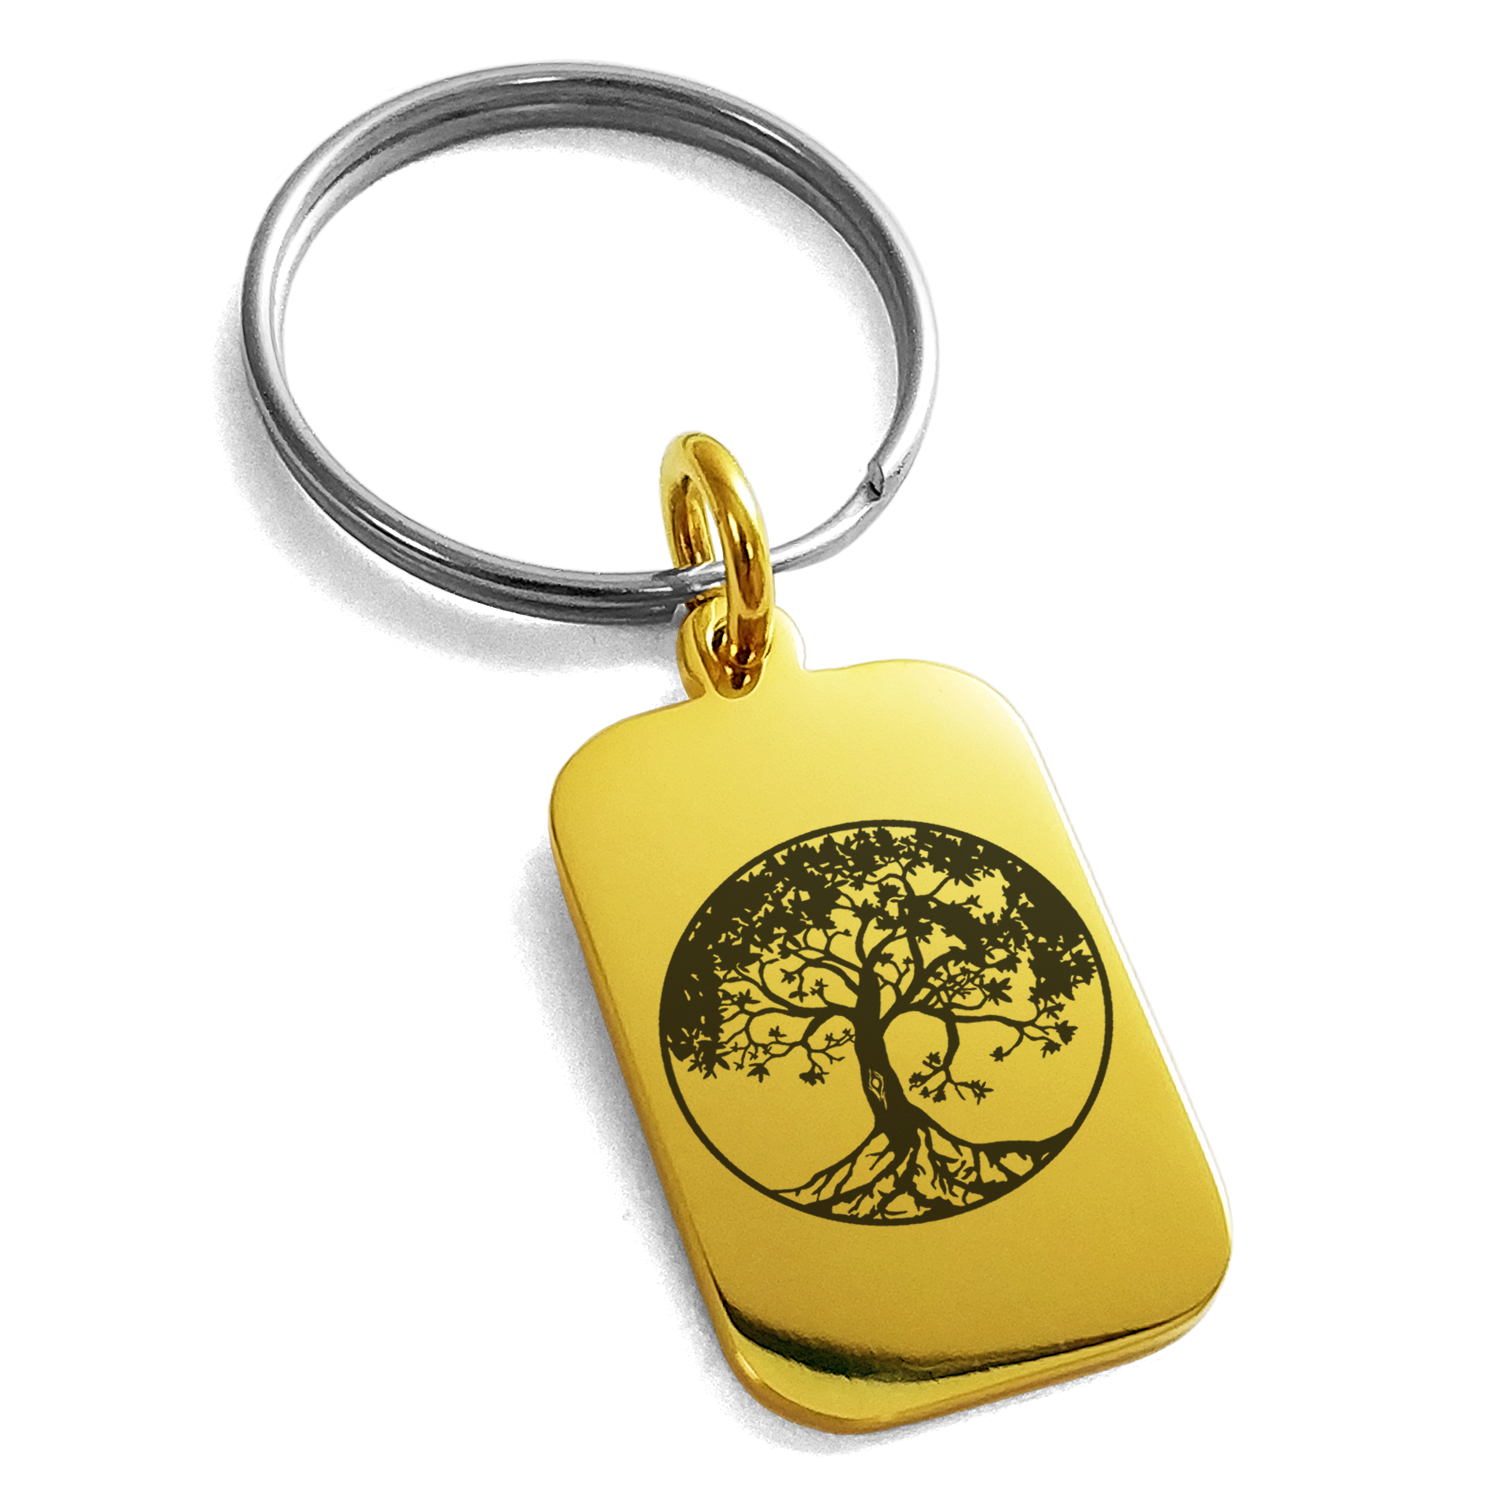 Stainless Steel Tree of Life Engraved Small Rectangle Dog Tag Charm Keychain Keyring